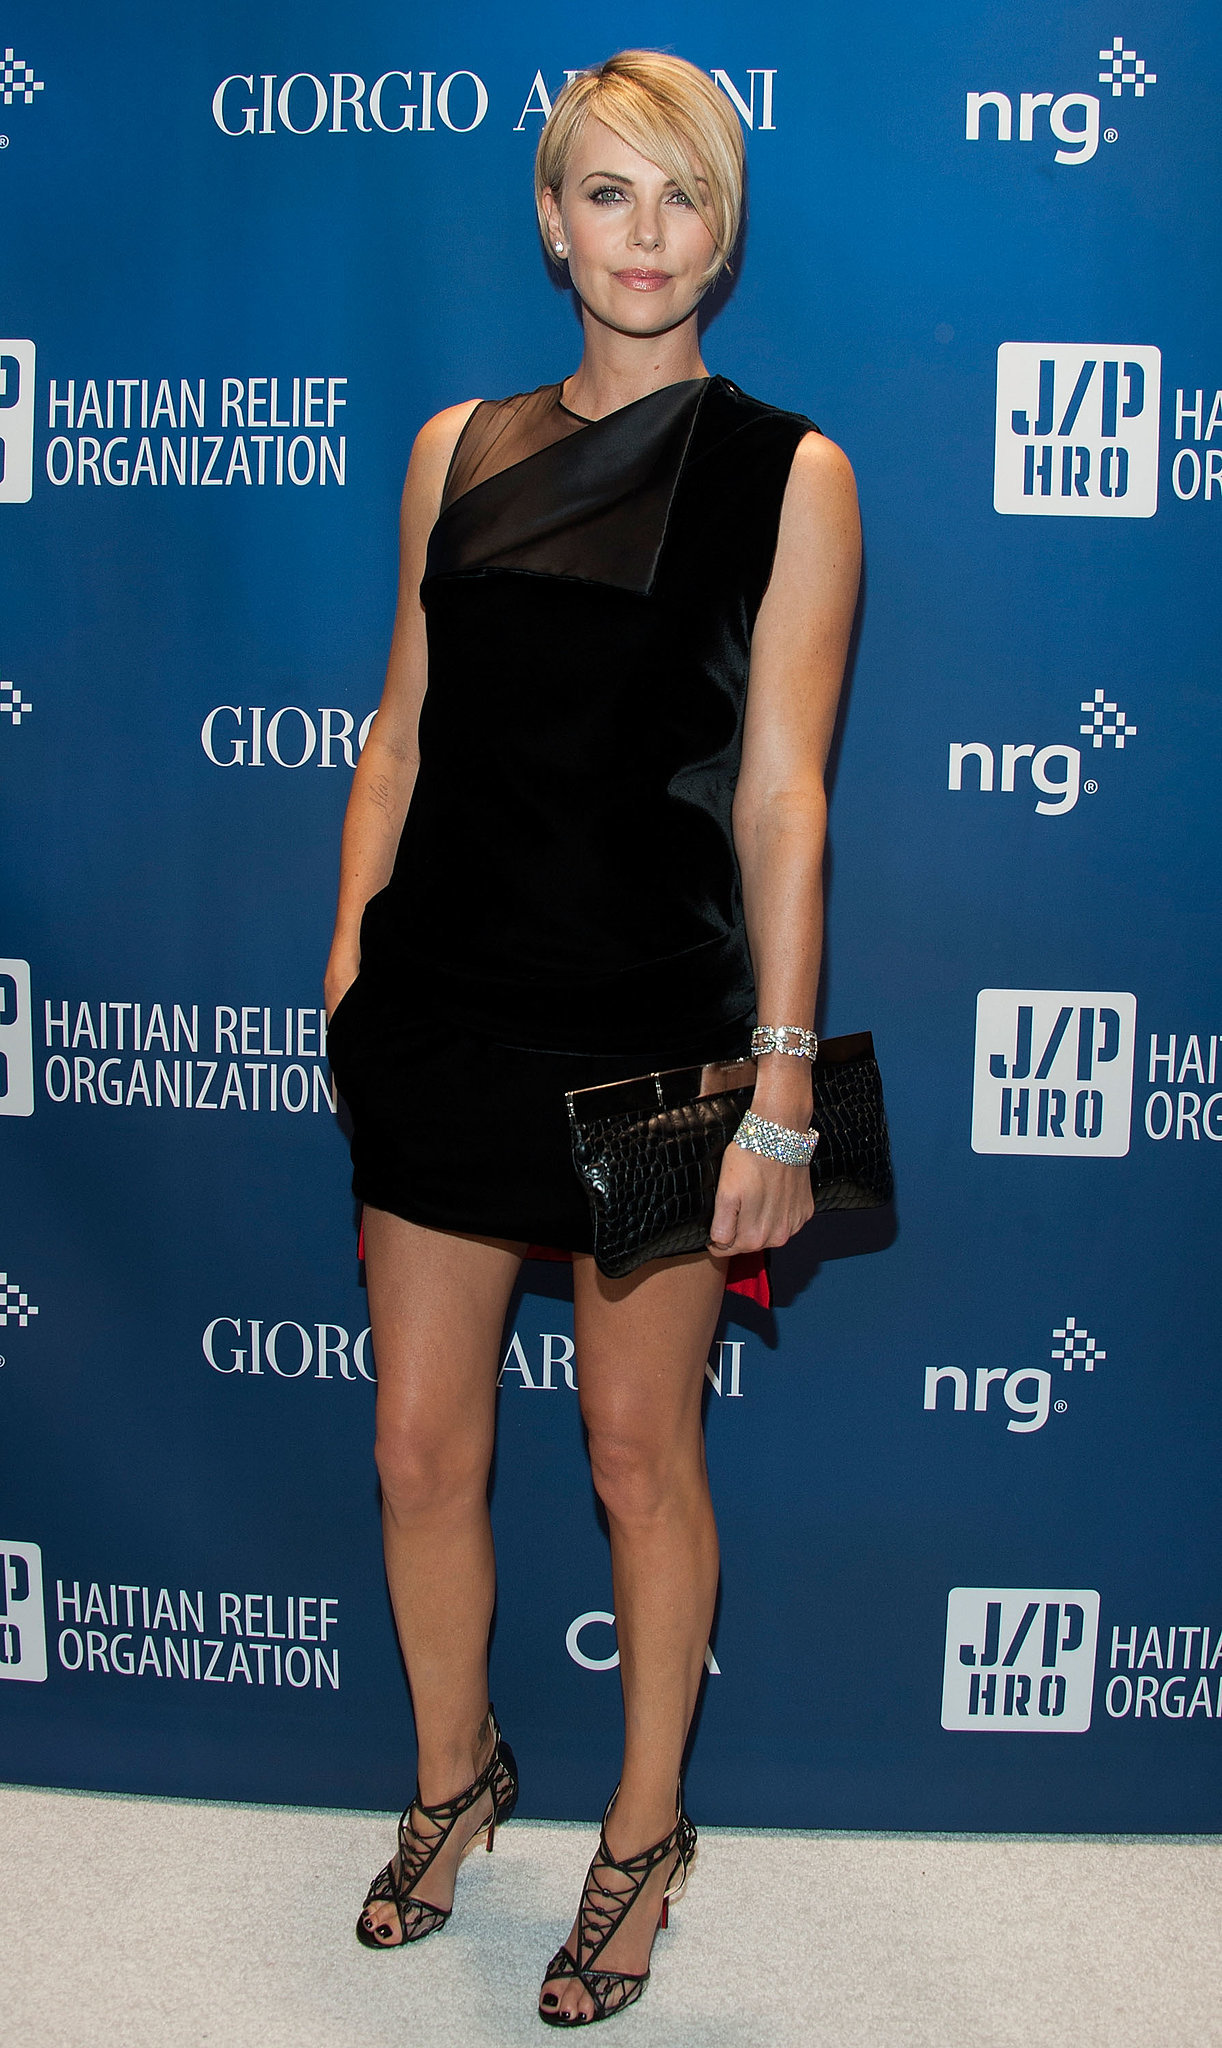 The geometric details of Charlize's look make for an eye-catching outfit with multiple focal points.